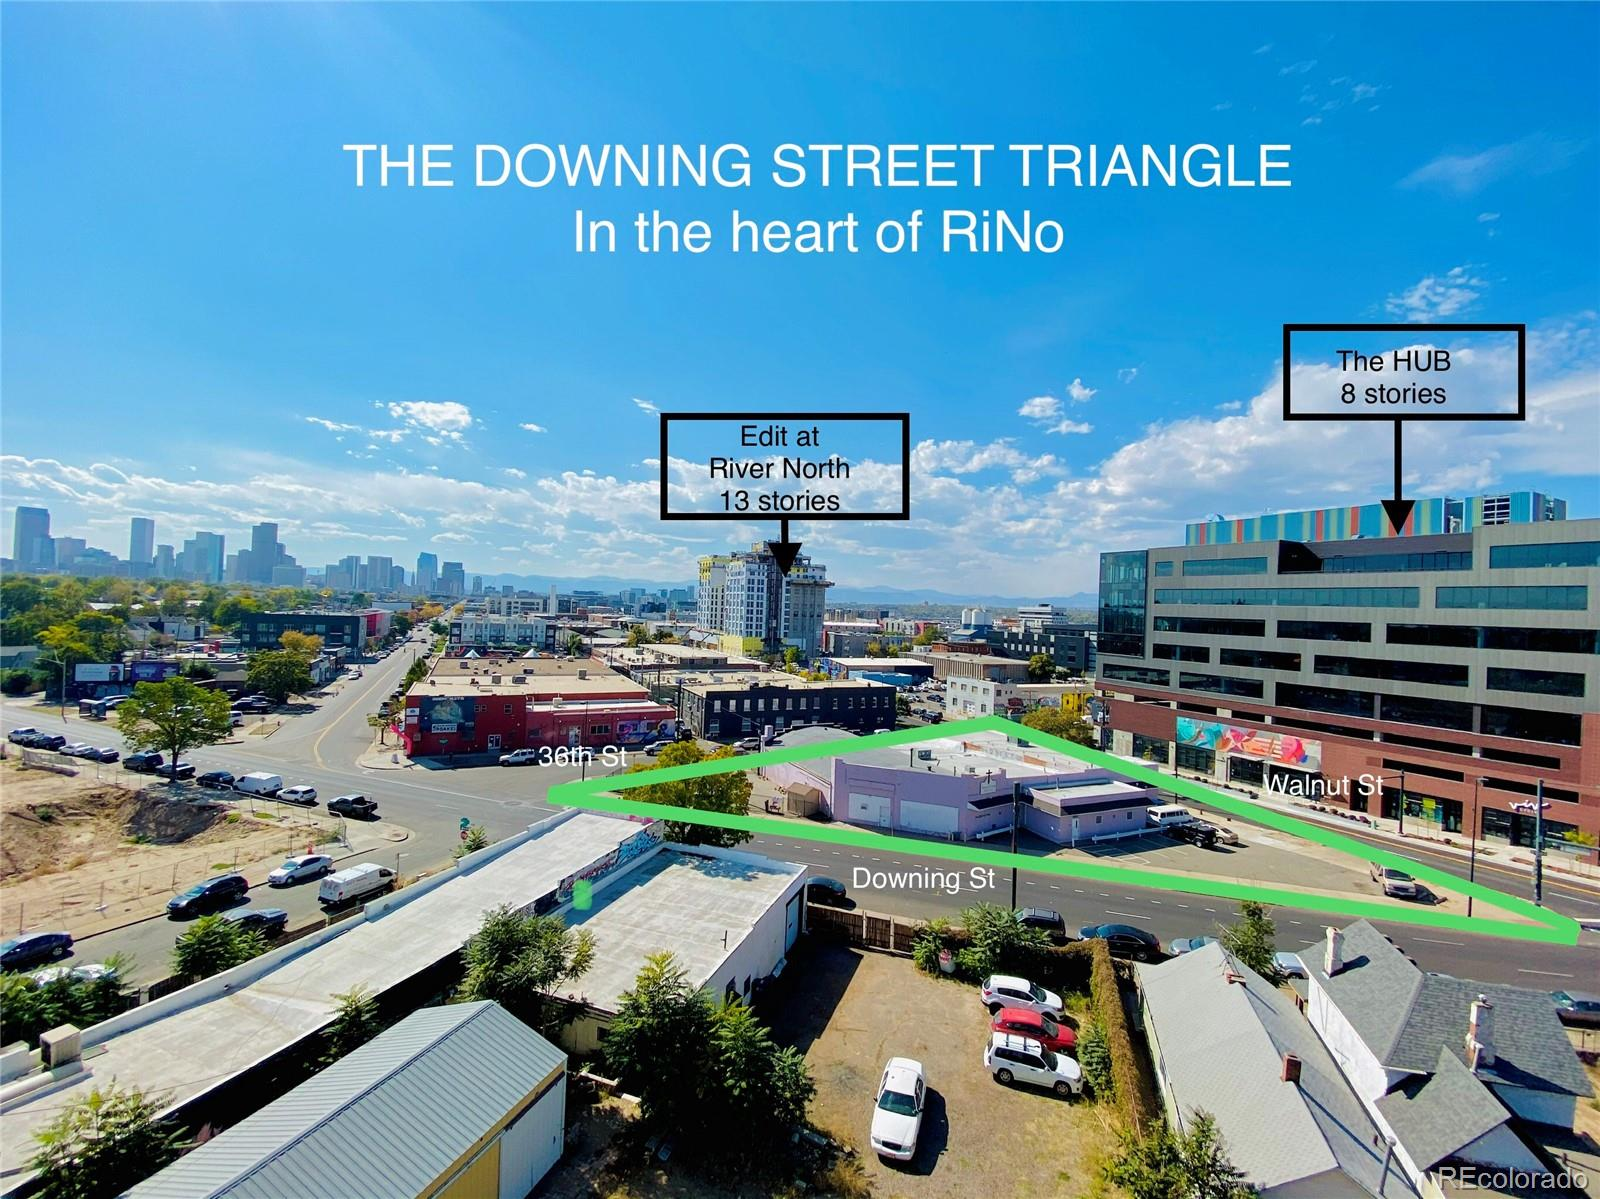 THE DOWNING STREET TRIANGLE - Prime Development Opportunity in the heart of RiNo on Downing, Walnut and 36th Street. 3703 - 3739 Downing is on three corners, zoned C-MX-8 with a 12 story overlay. Site is 18,327/SF with an existing 12,413/SF building.  This triangular piece of land resides in the Design Overlay Zone District Located in the 38th & Blake Station.  These have Height Amendments for enhanced design quality with higher-intensity development near the commuter rail station. Comps from across the street on the east side of the 3700 block of North Downing St are at $278.19 sq/ft with only an 8 story maximum incentive height sold on Sept 2020. (34,940 sq ft at $9.72M)